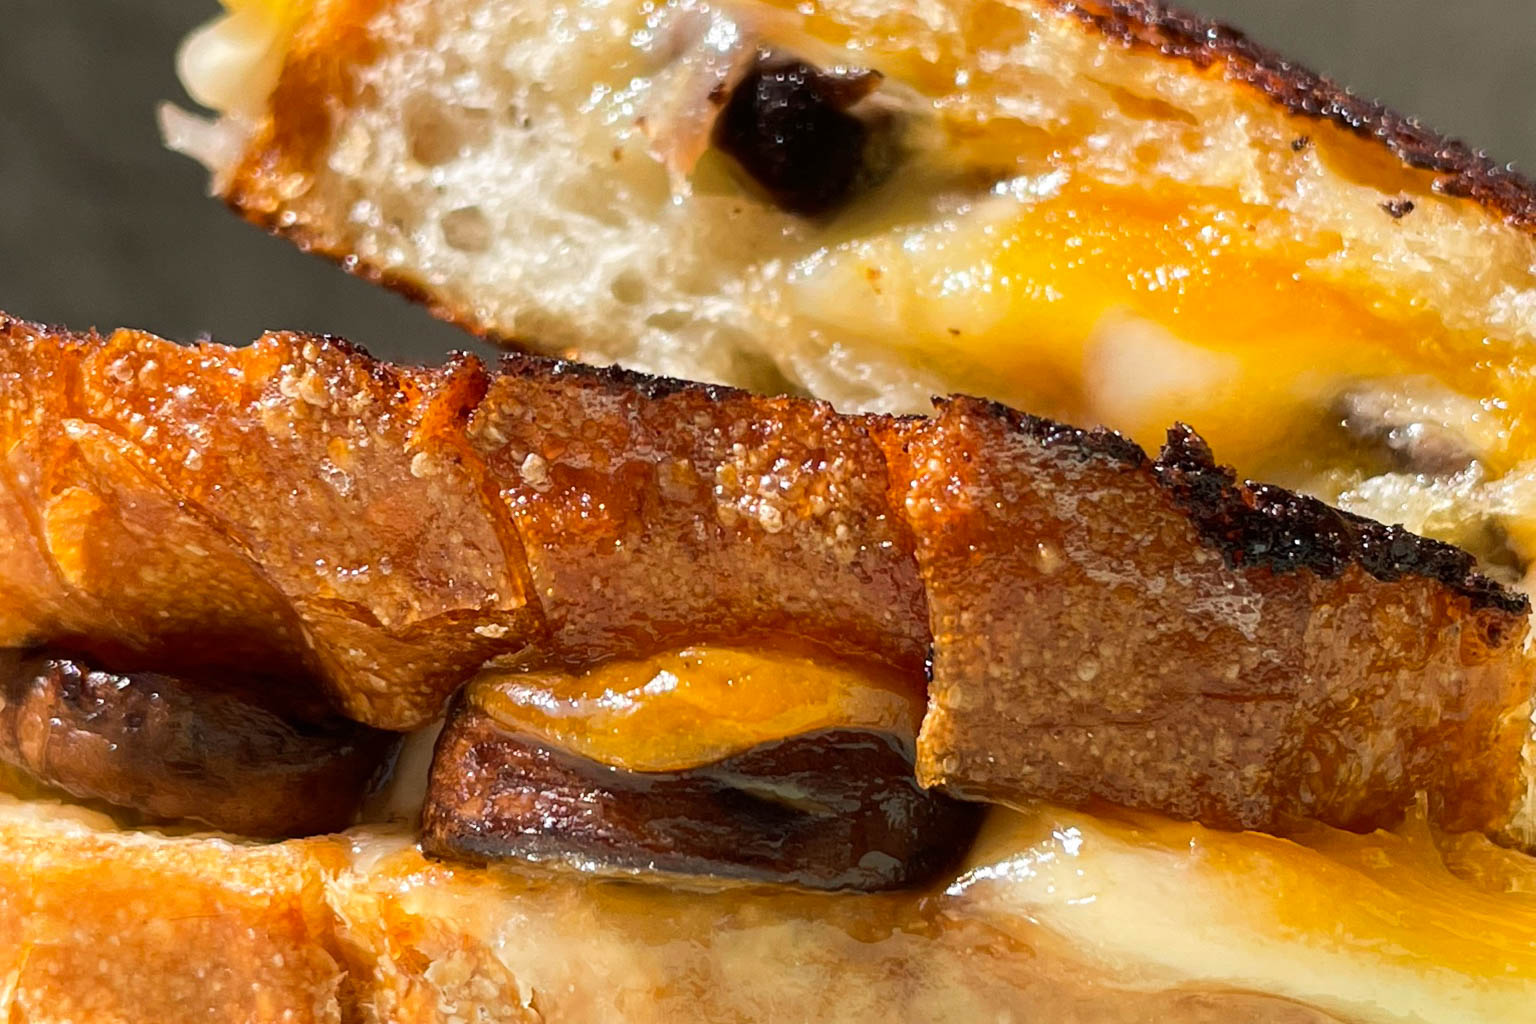 Garlic Grilled Cheese with Caramelized Onion and Mushrooms